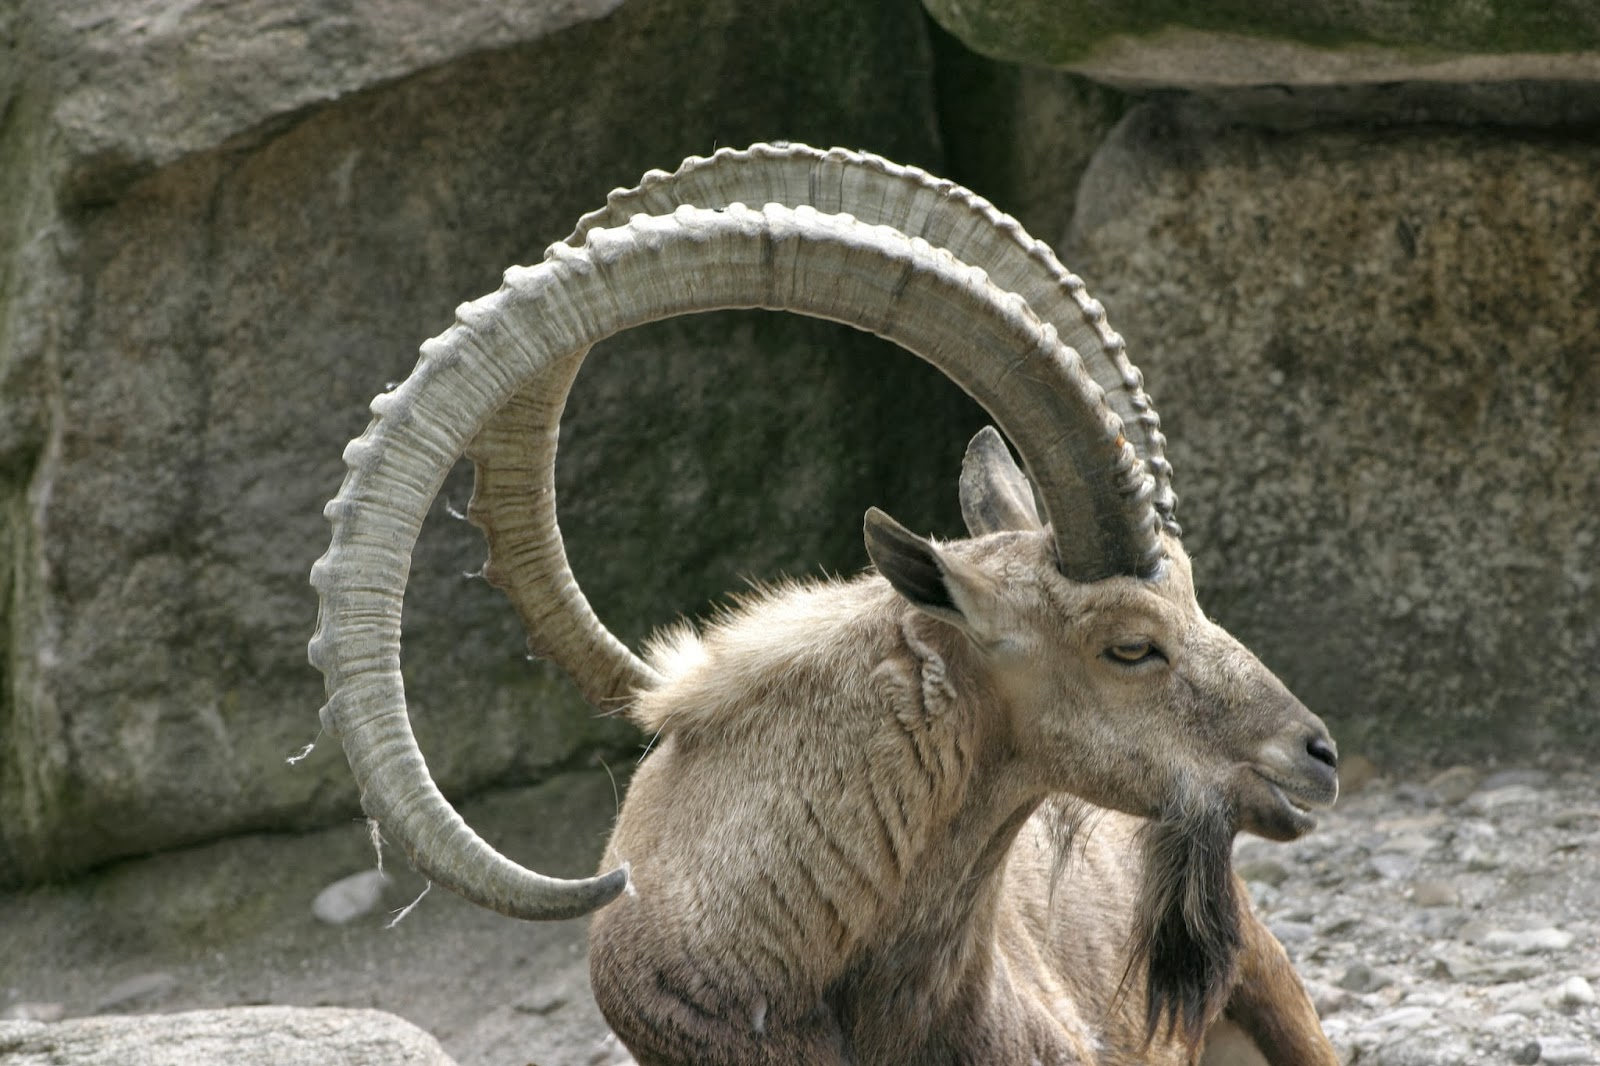 Ram\'s Horn: Sheep and mountain goats, and some adorablosity